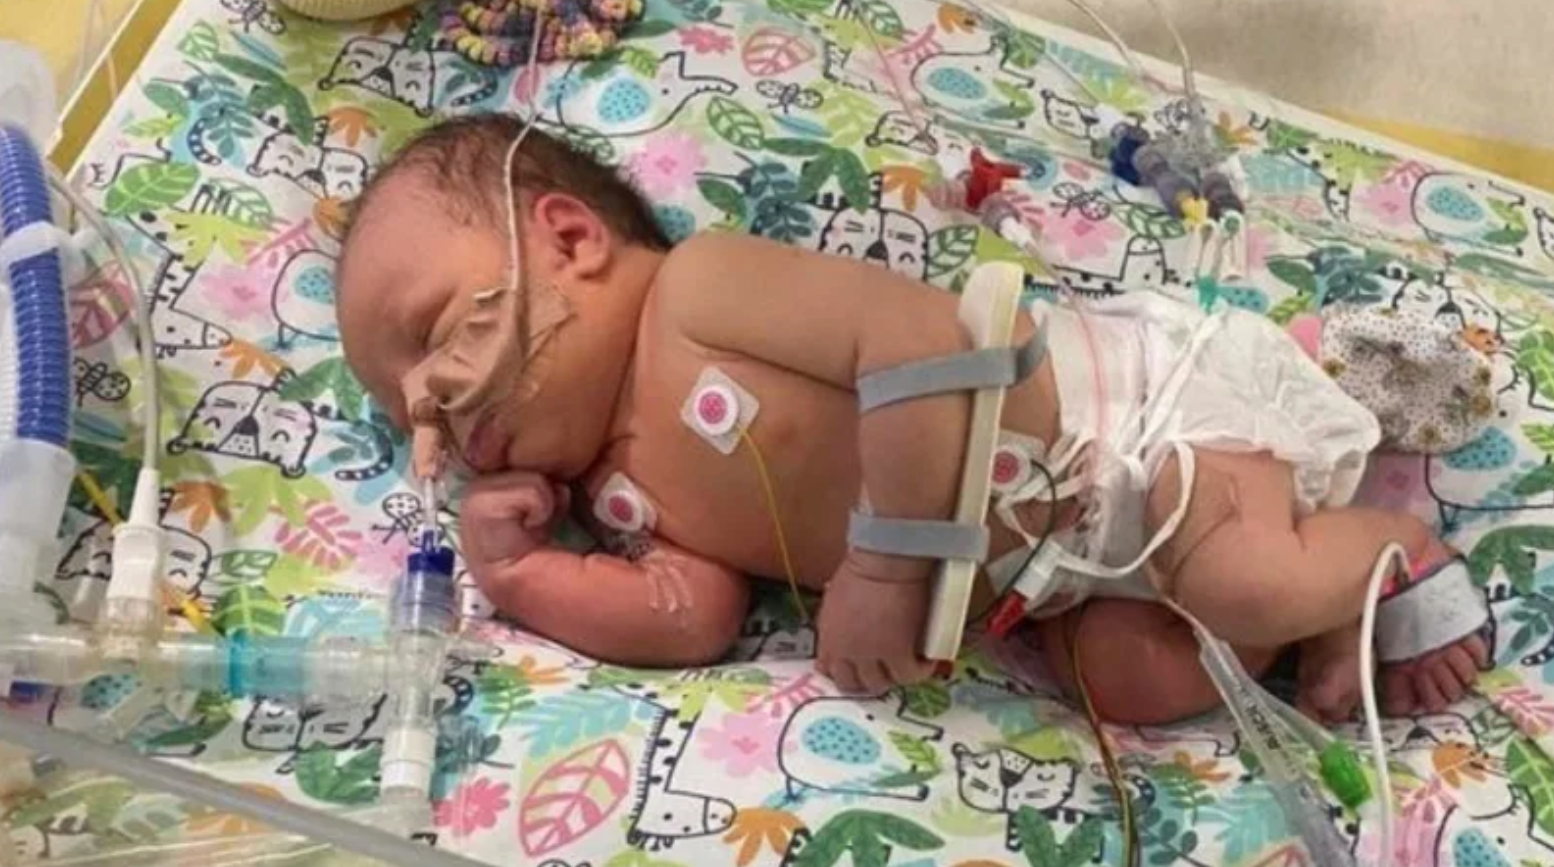 Tyson Fury raises over £30k for children's charity as newborn daughter returns to intensive care, The Manc